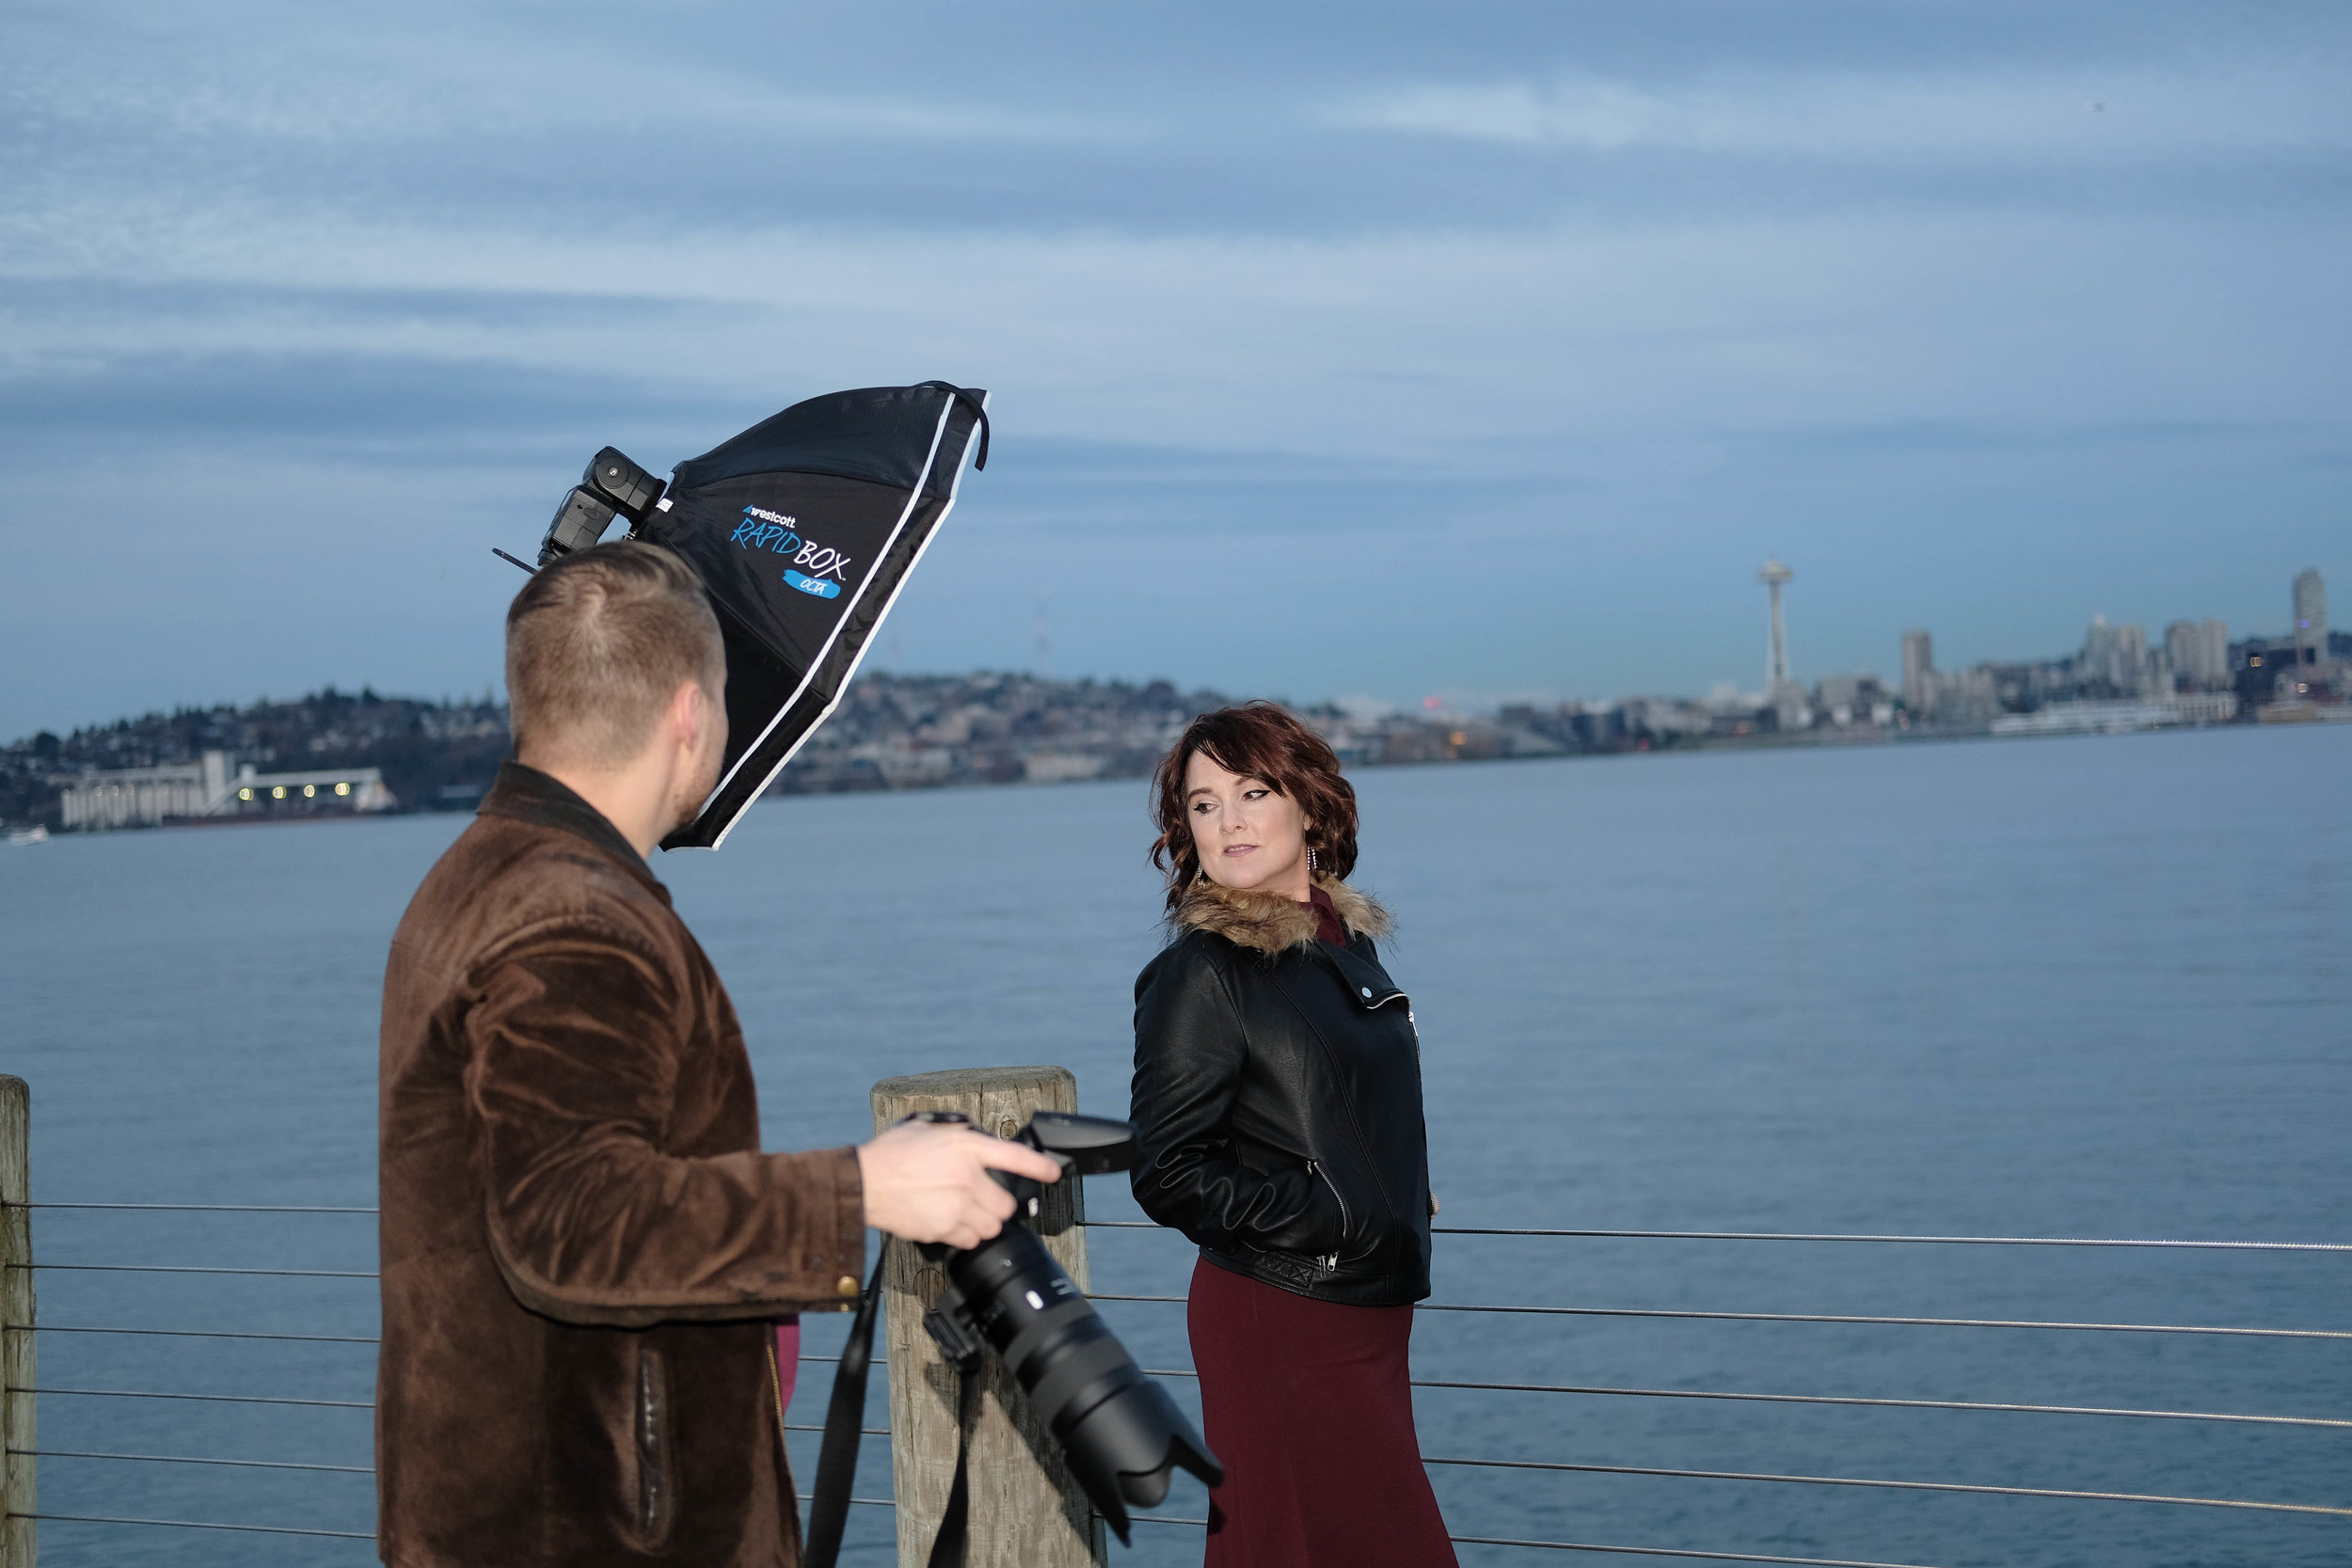 Behind the Scenes at a photoshoot with Kristin Chambers, Alki, West Seattle. The temperature was dropping fast. KChambs was a trooper, and she killed it. (Tony did some good work, too.)